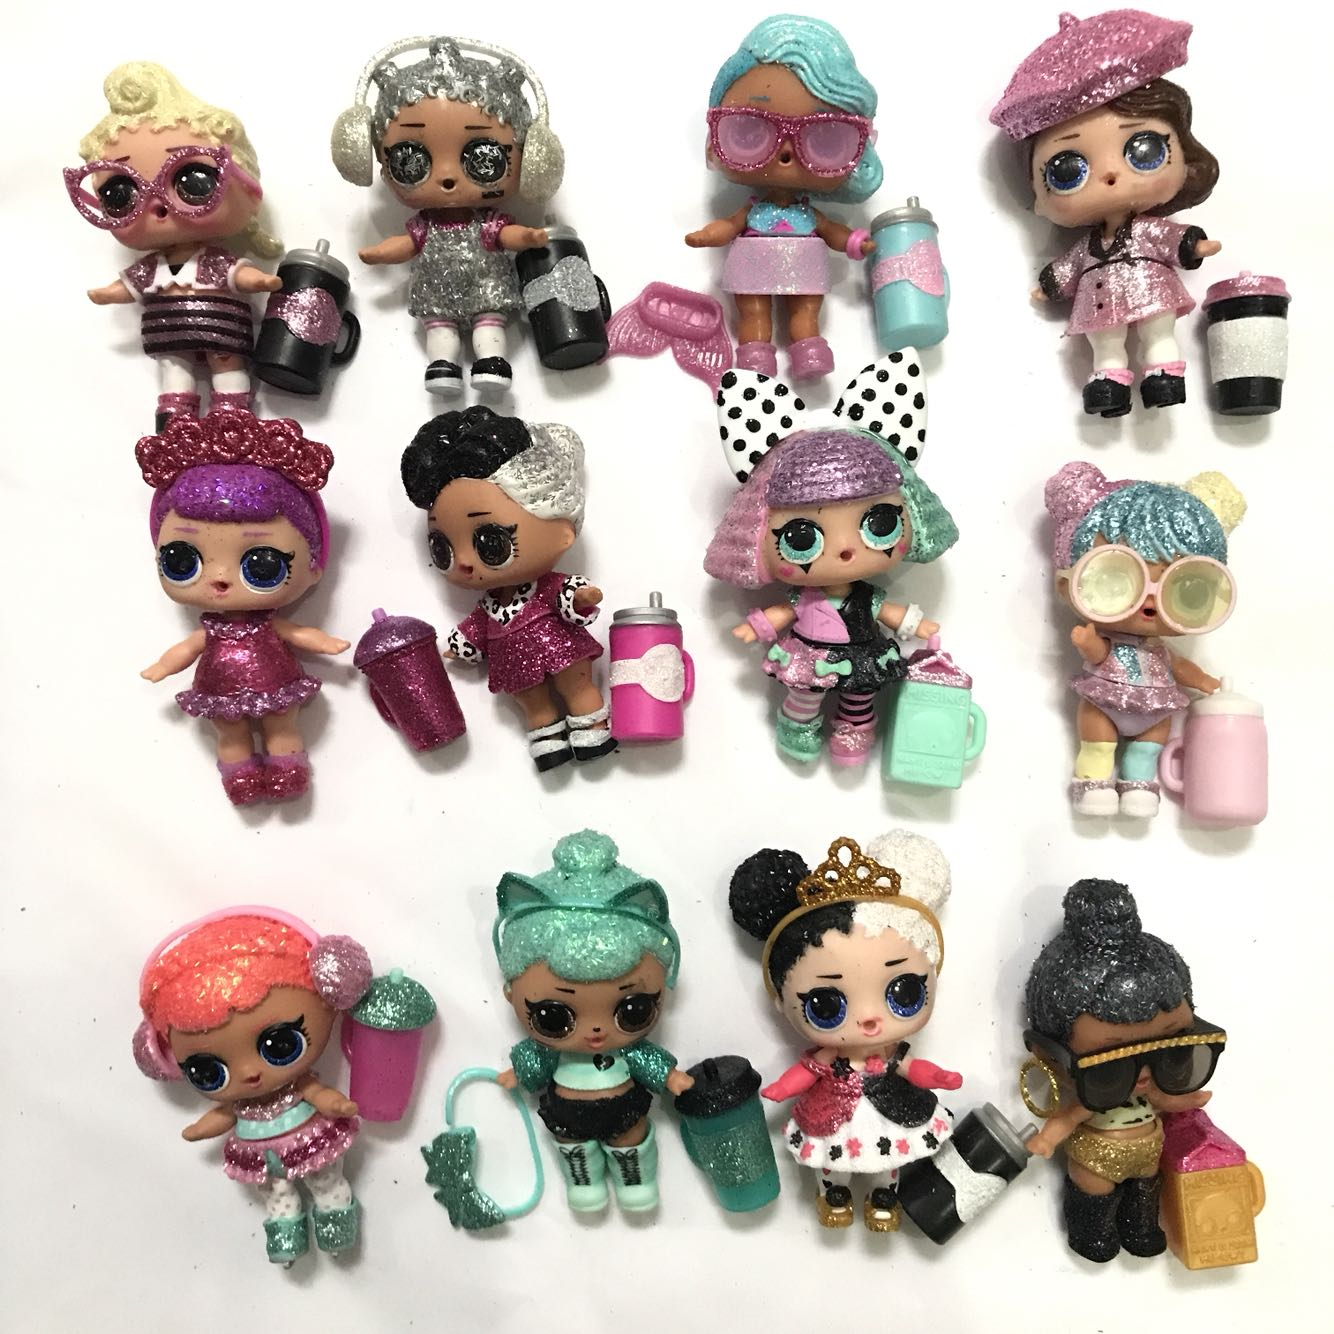 11 Style LOL Doll Surprise Original Flash 4 Generation New Pattern Toys For Children Free Shipping